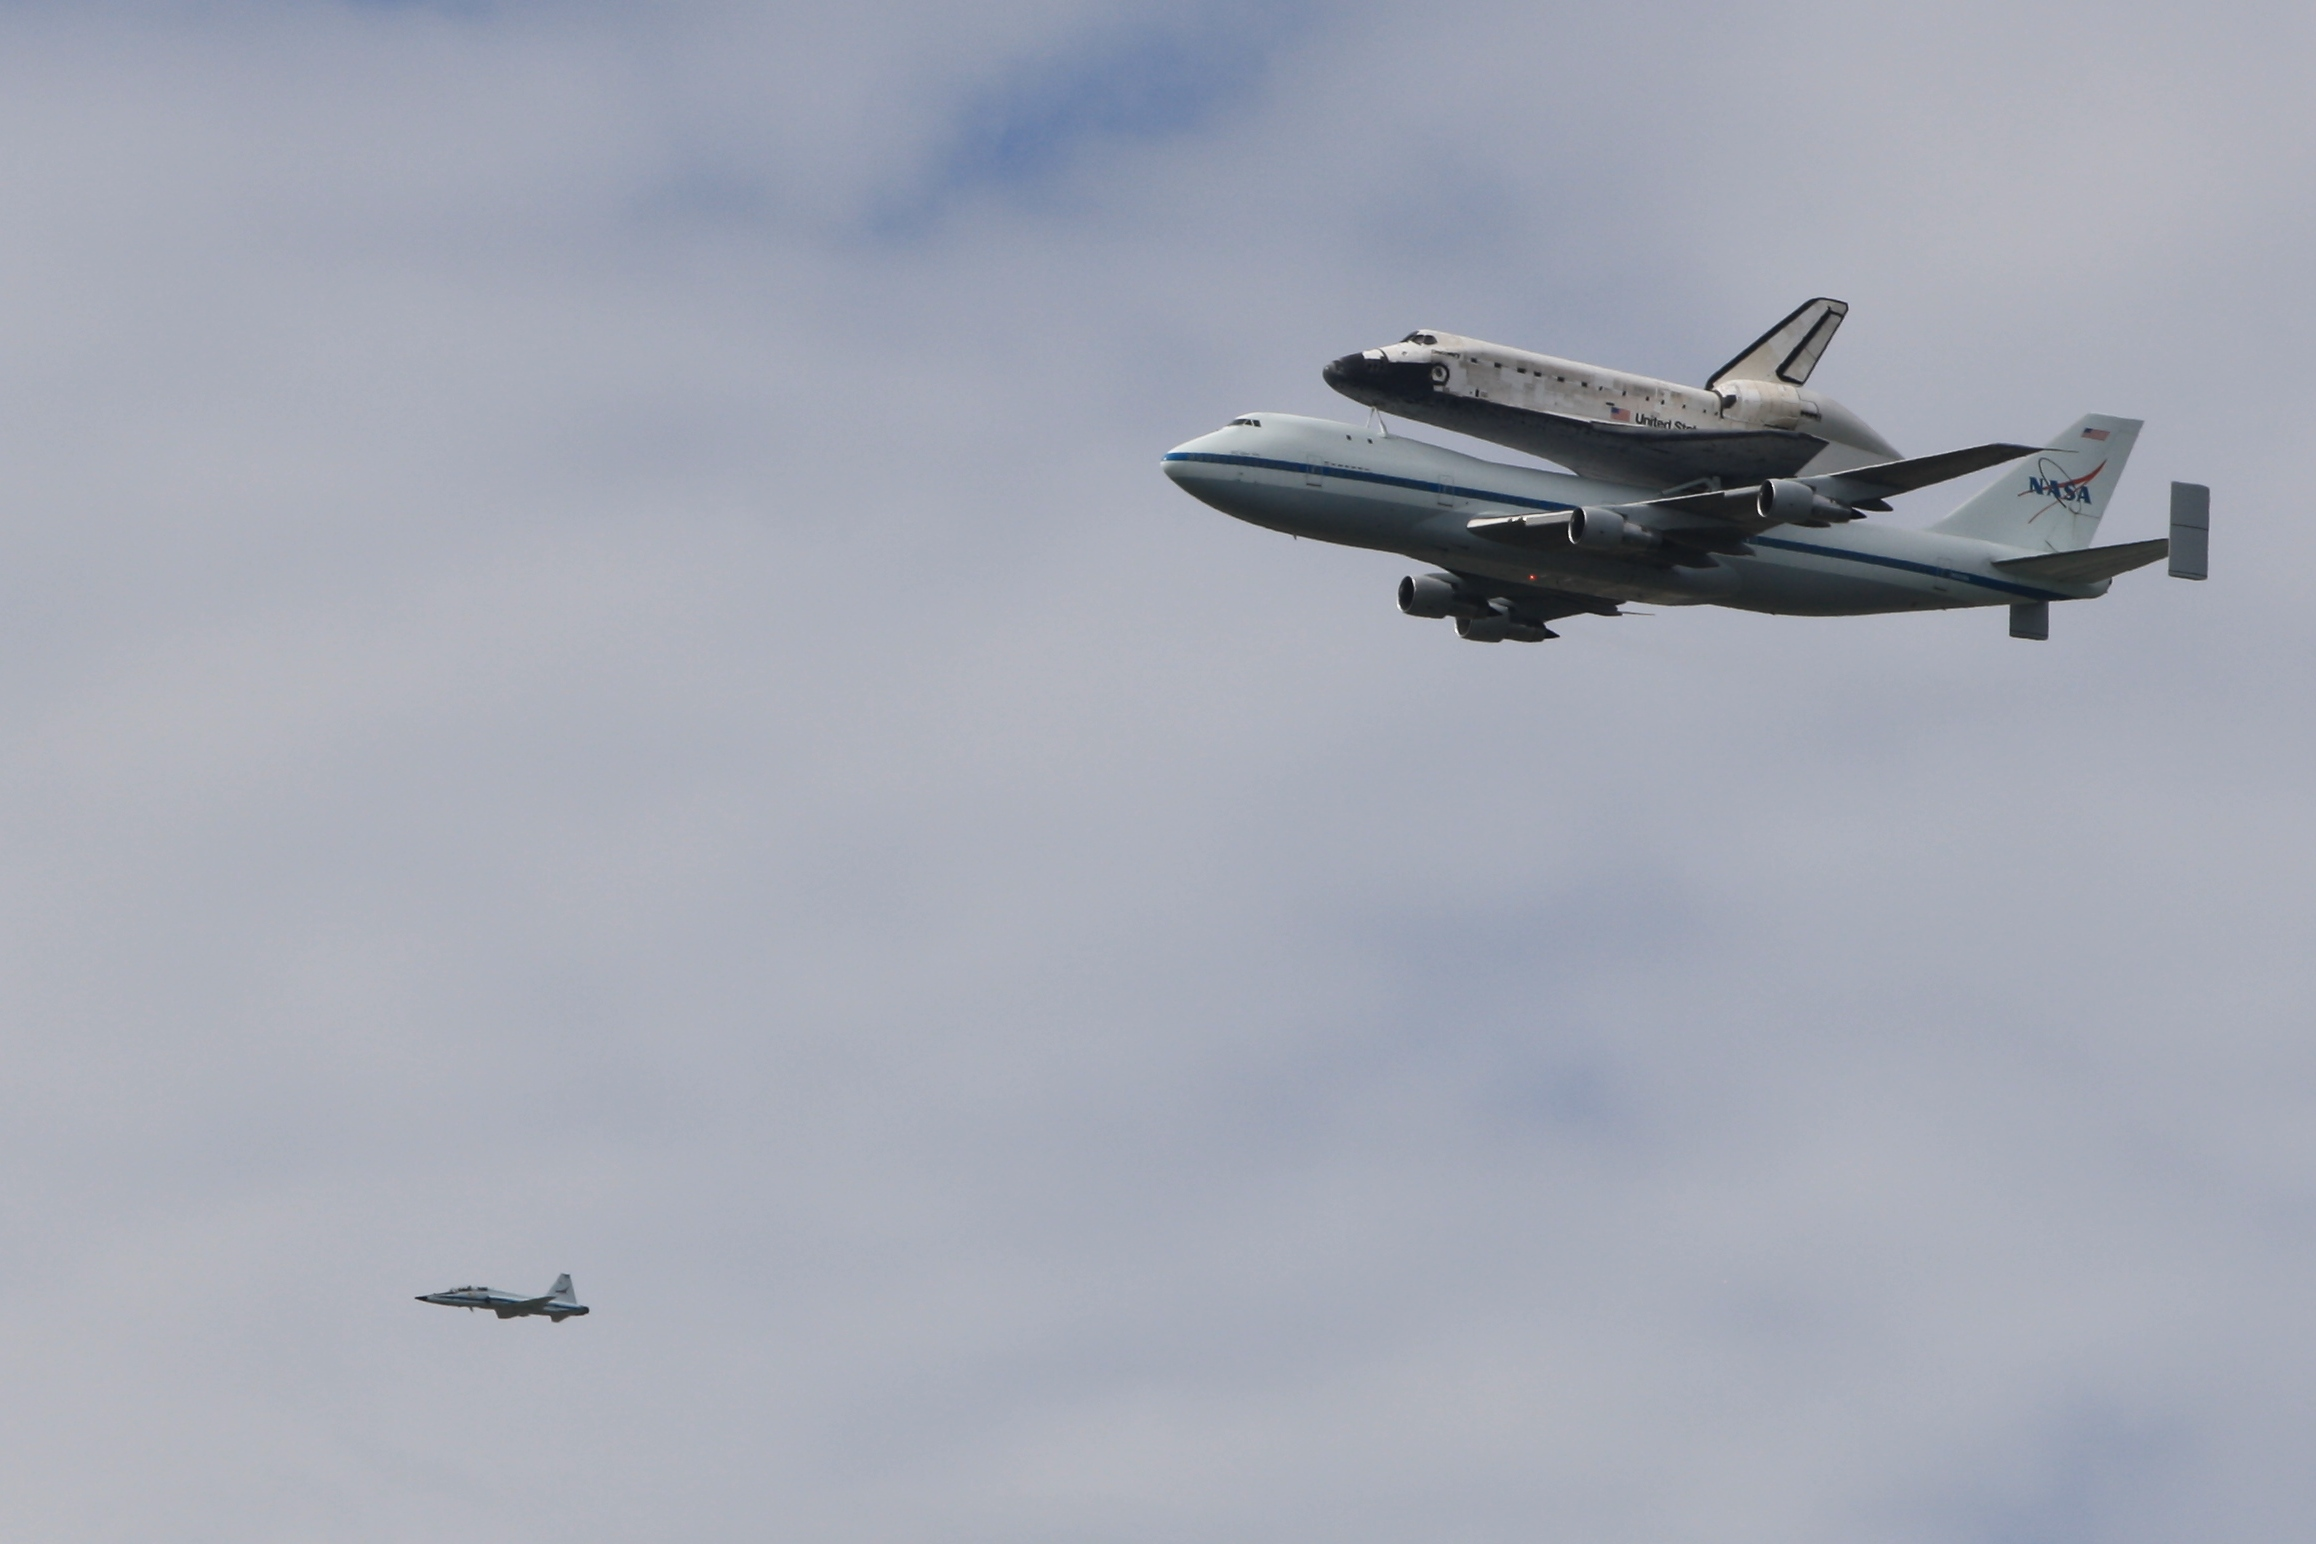 usa space shuttle program - photo #21